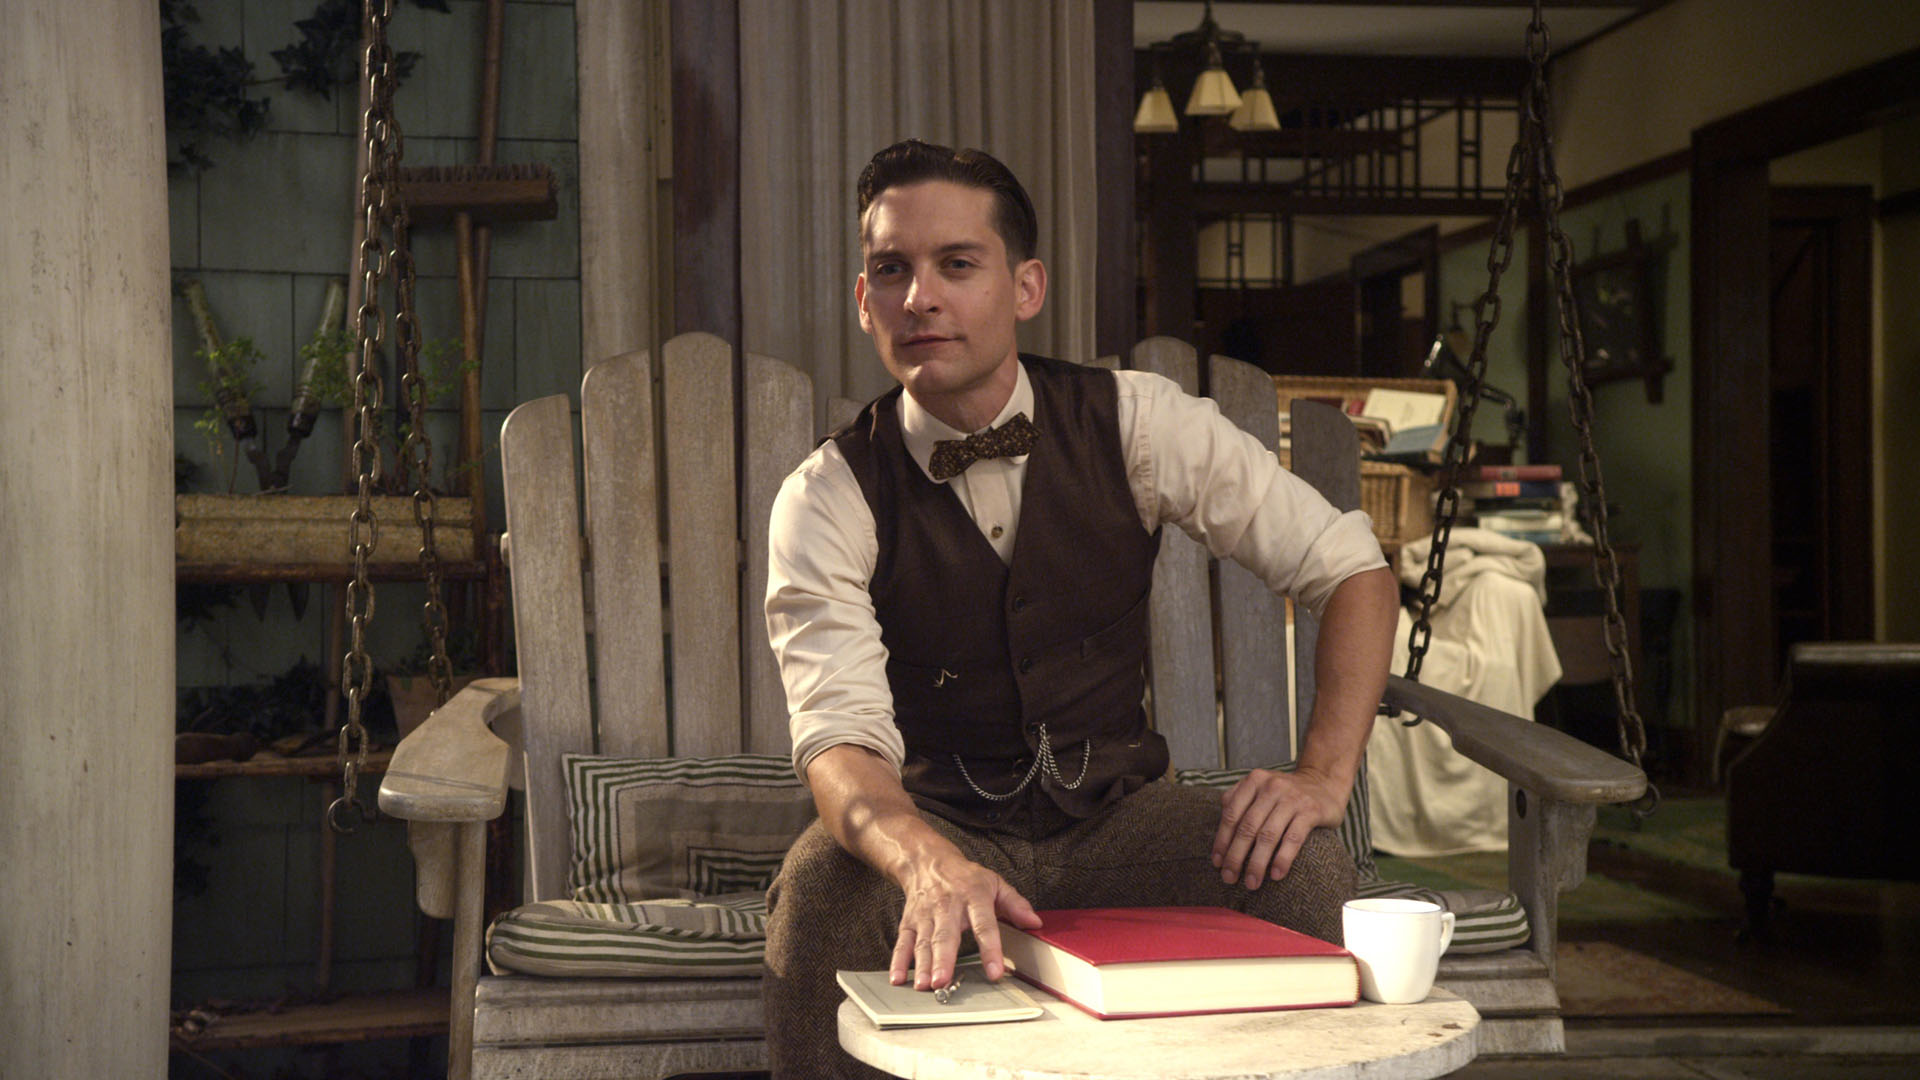 nicks character the great gatsby Narrative breaks in the great gatsby are important devices in the novel that not only  the possibility that it is nick carraway, the narrator — and not jay gatsby, the  great gatsby, fitzgerald redefines the meaning of a hero as a character.